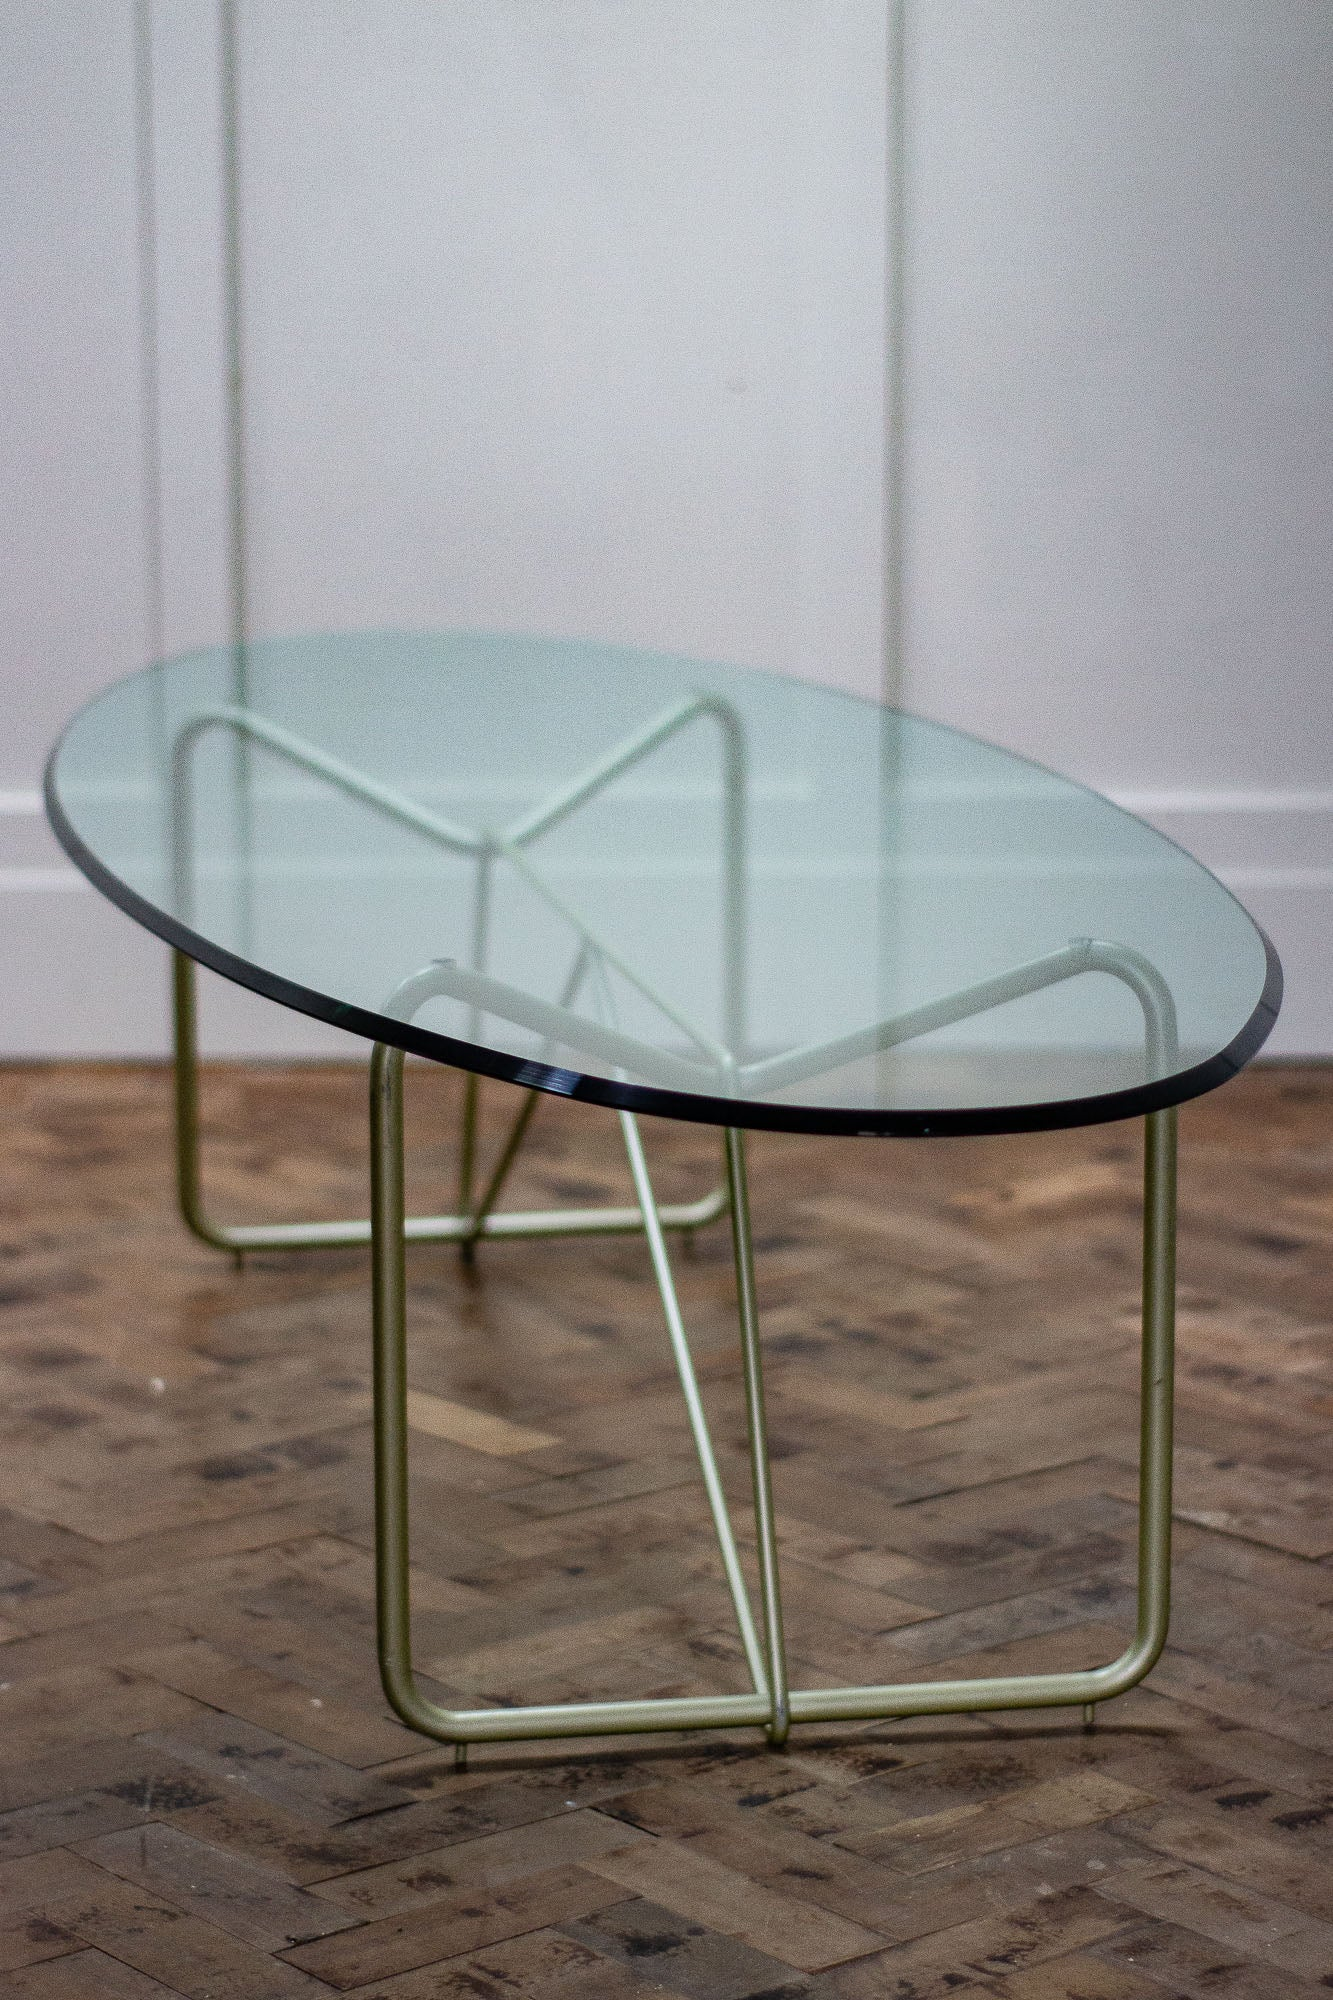 Excellent Mid Century Modern Oval Glass Coffee Table Home Interior And Landscaping Oversignezvosmurscom